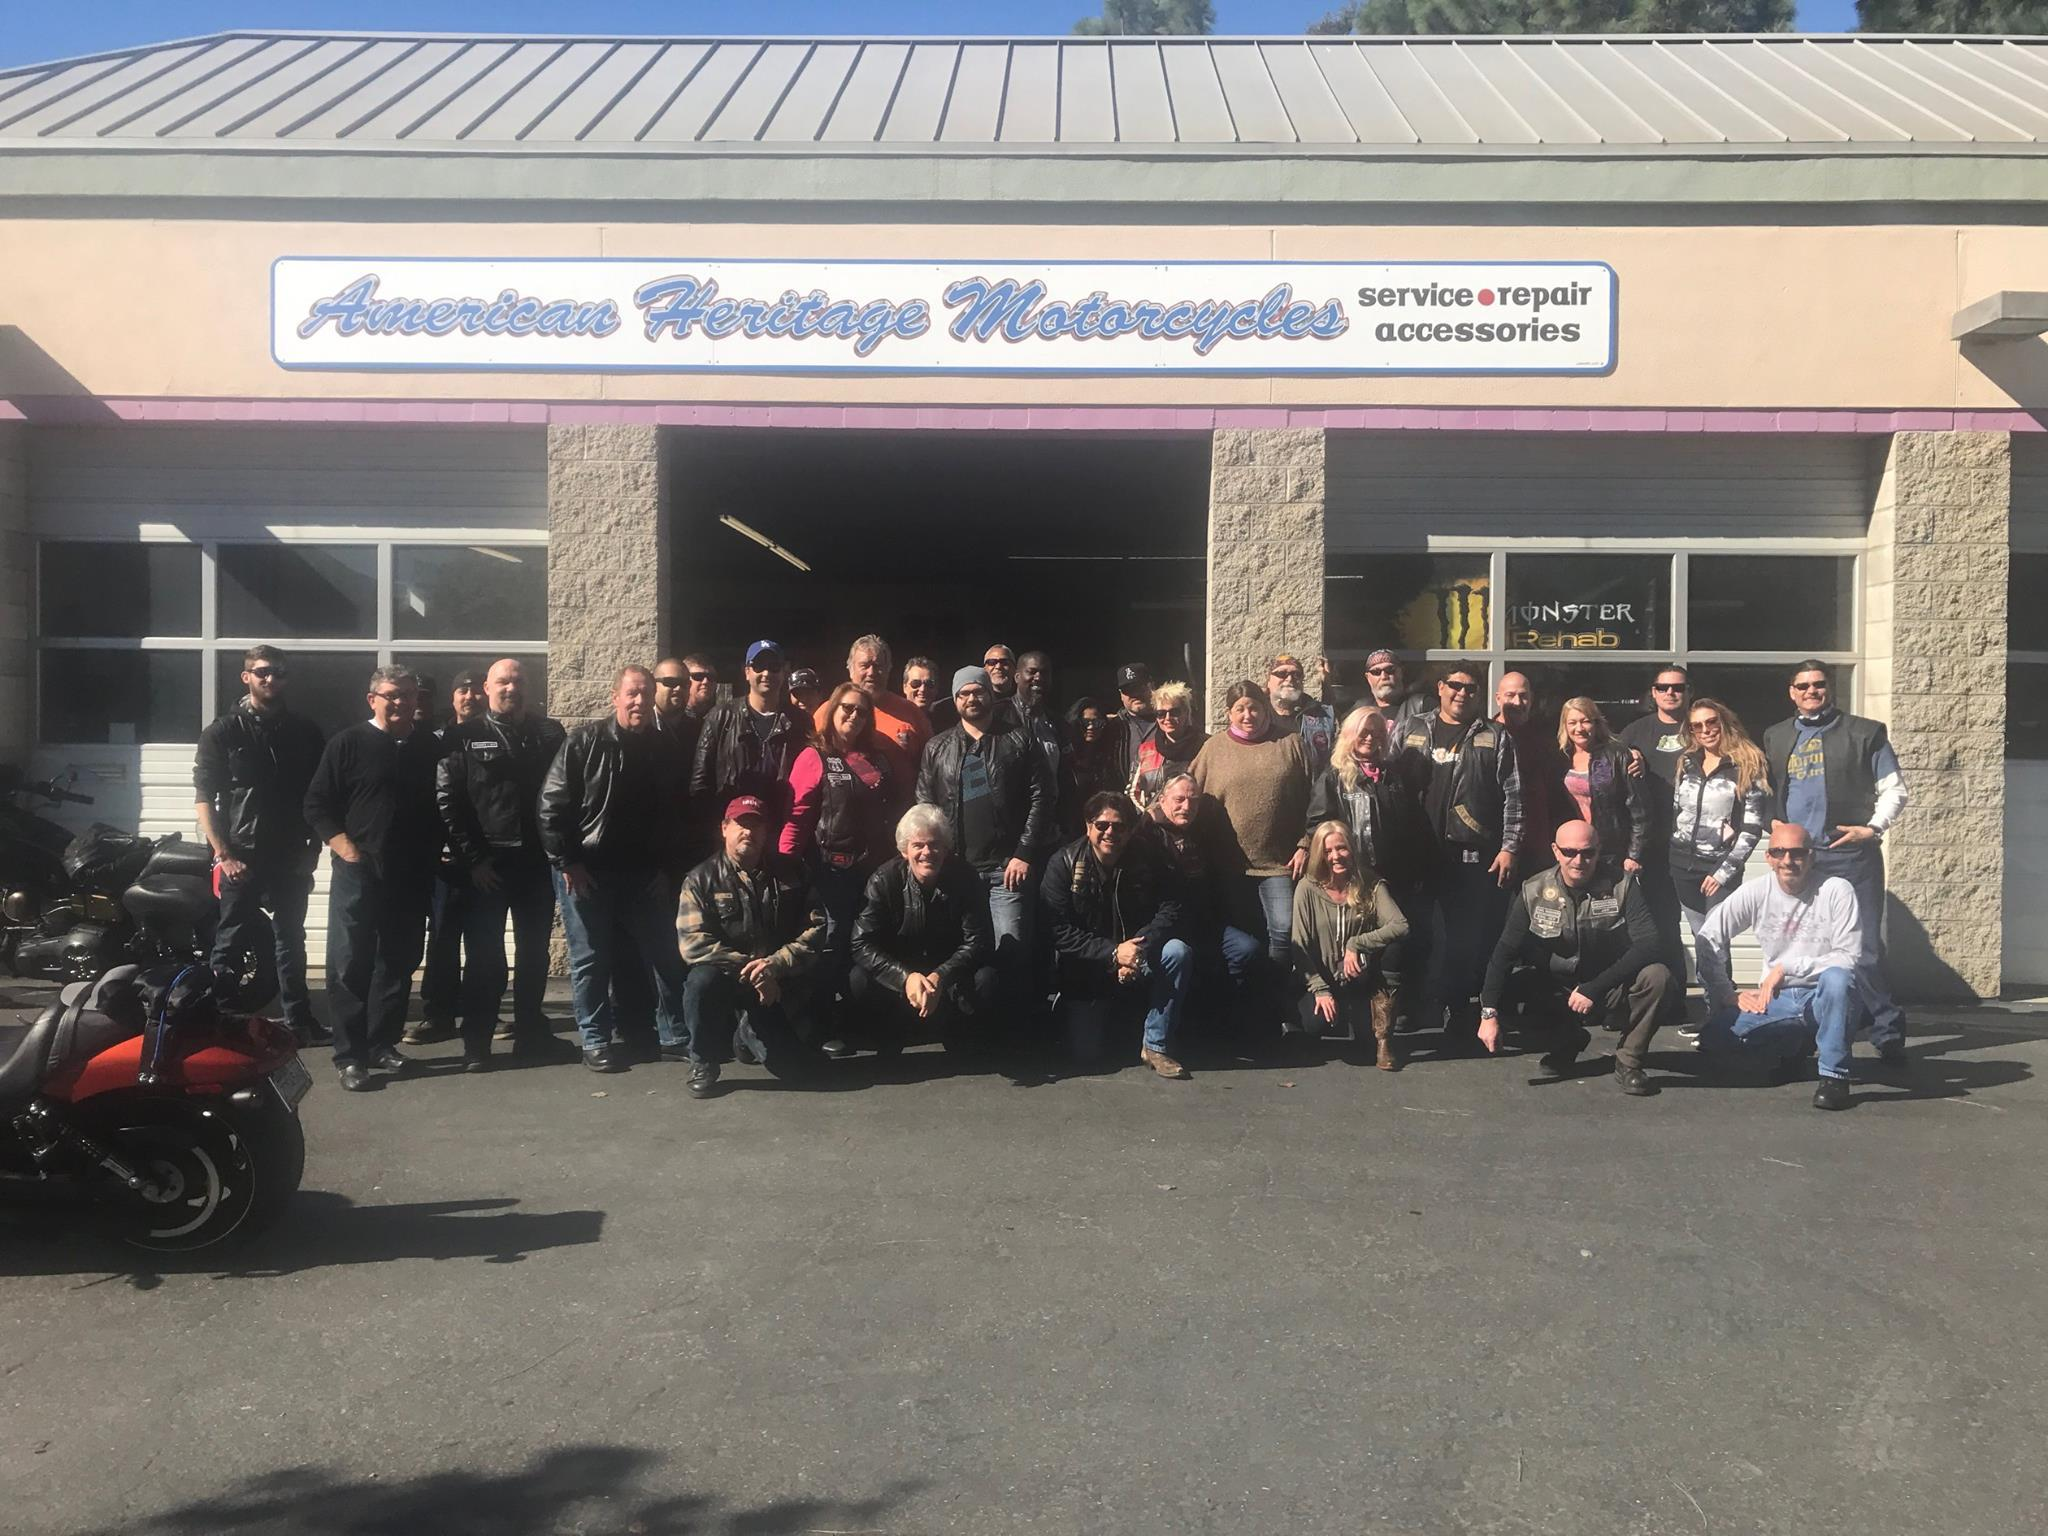 American heritage motorcycle service in ventura ca 805 for Motor scooter store near me